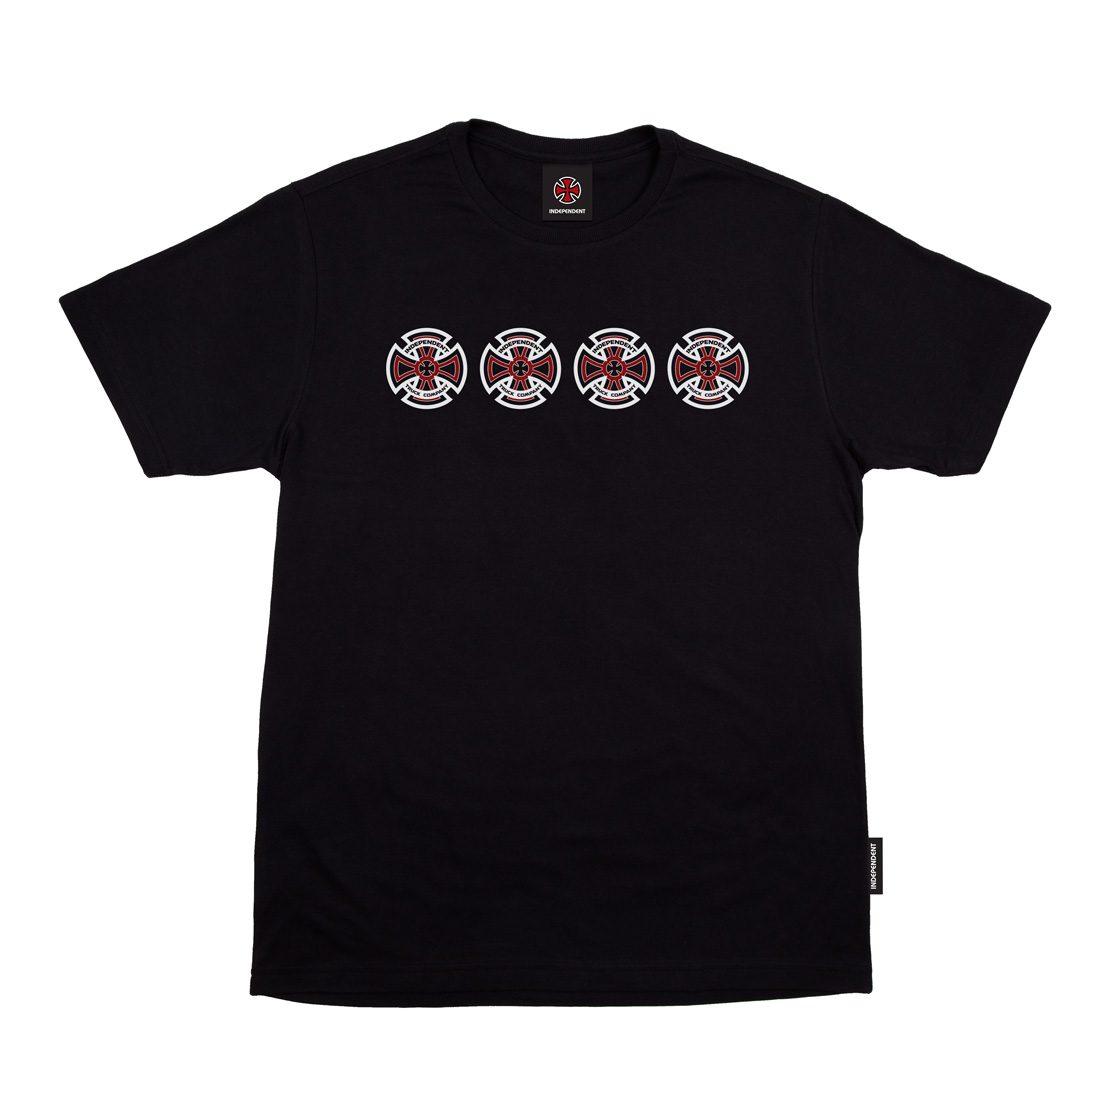 Camiseta Independent Valiant Black